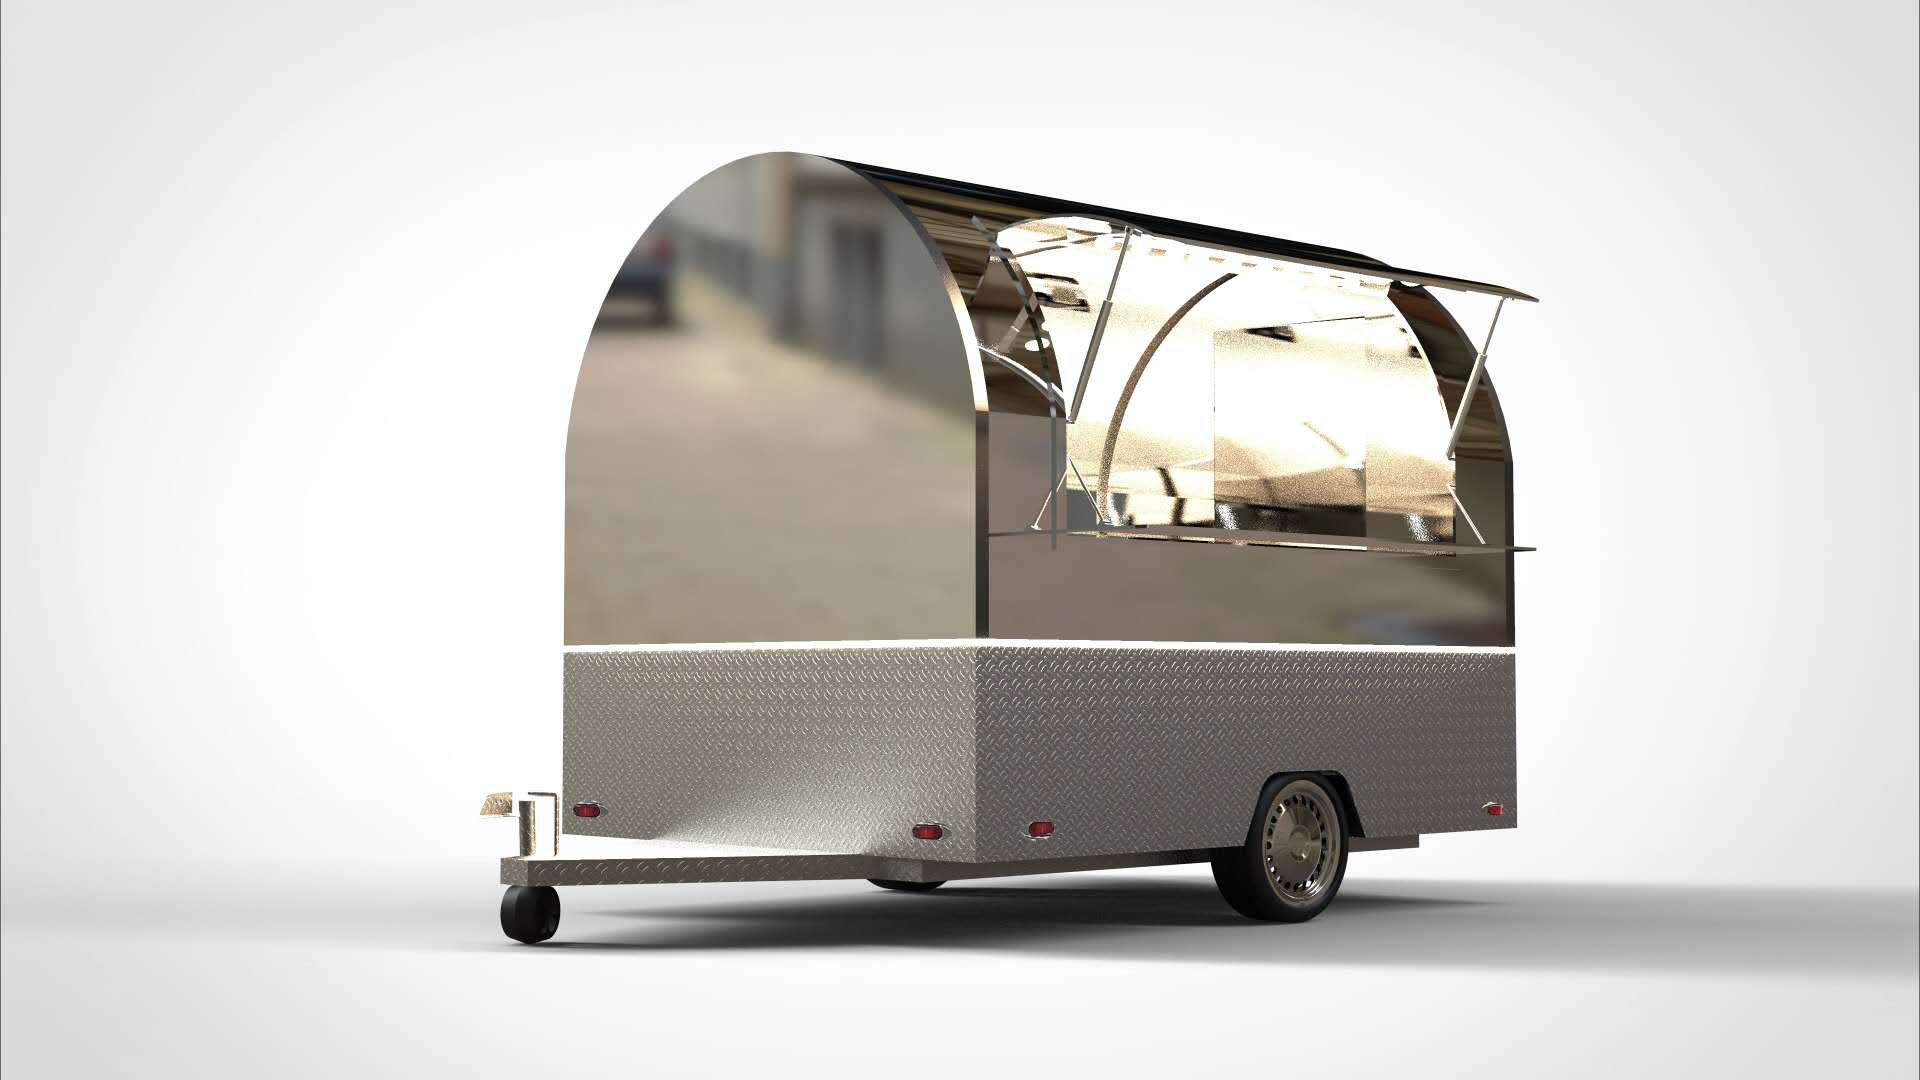 Full Alumunim Round Food Trailers Hot selling from China manufacturer of food trailers